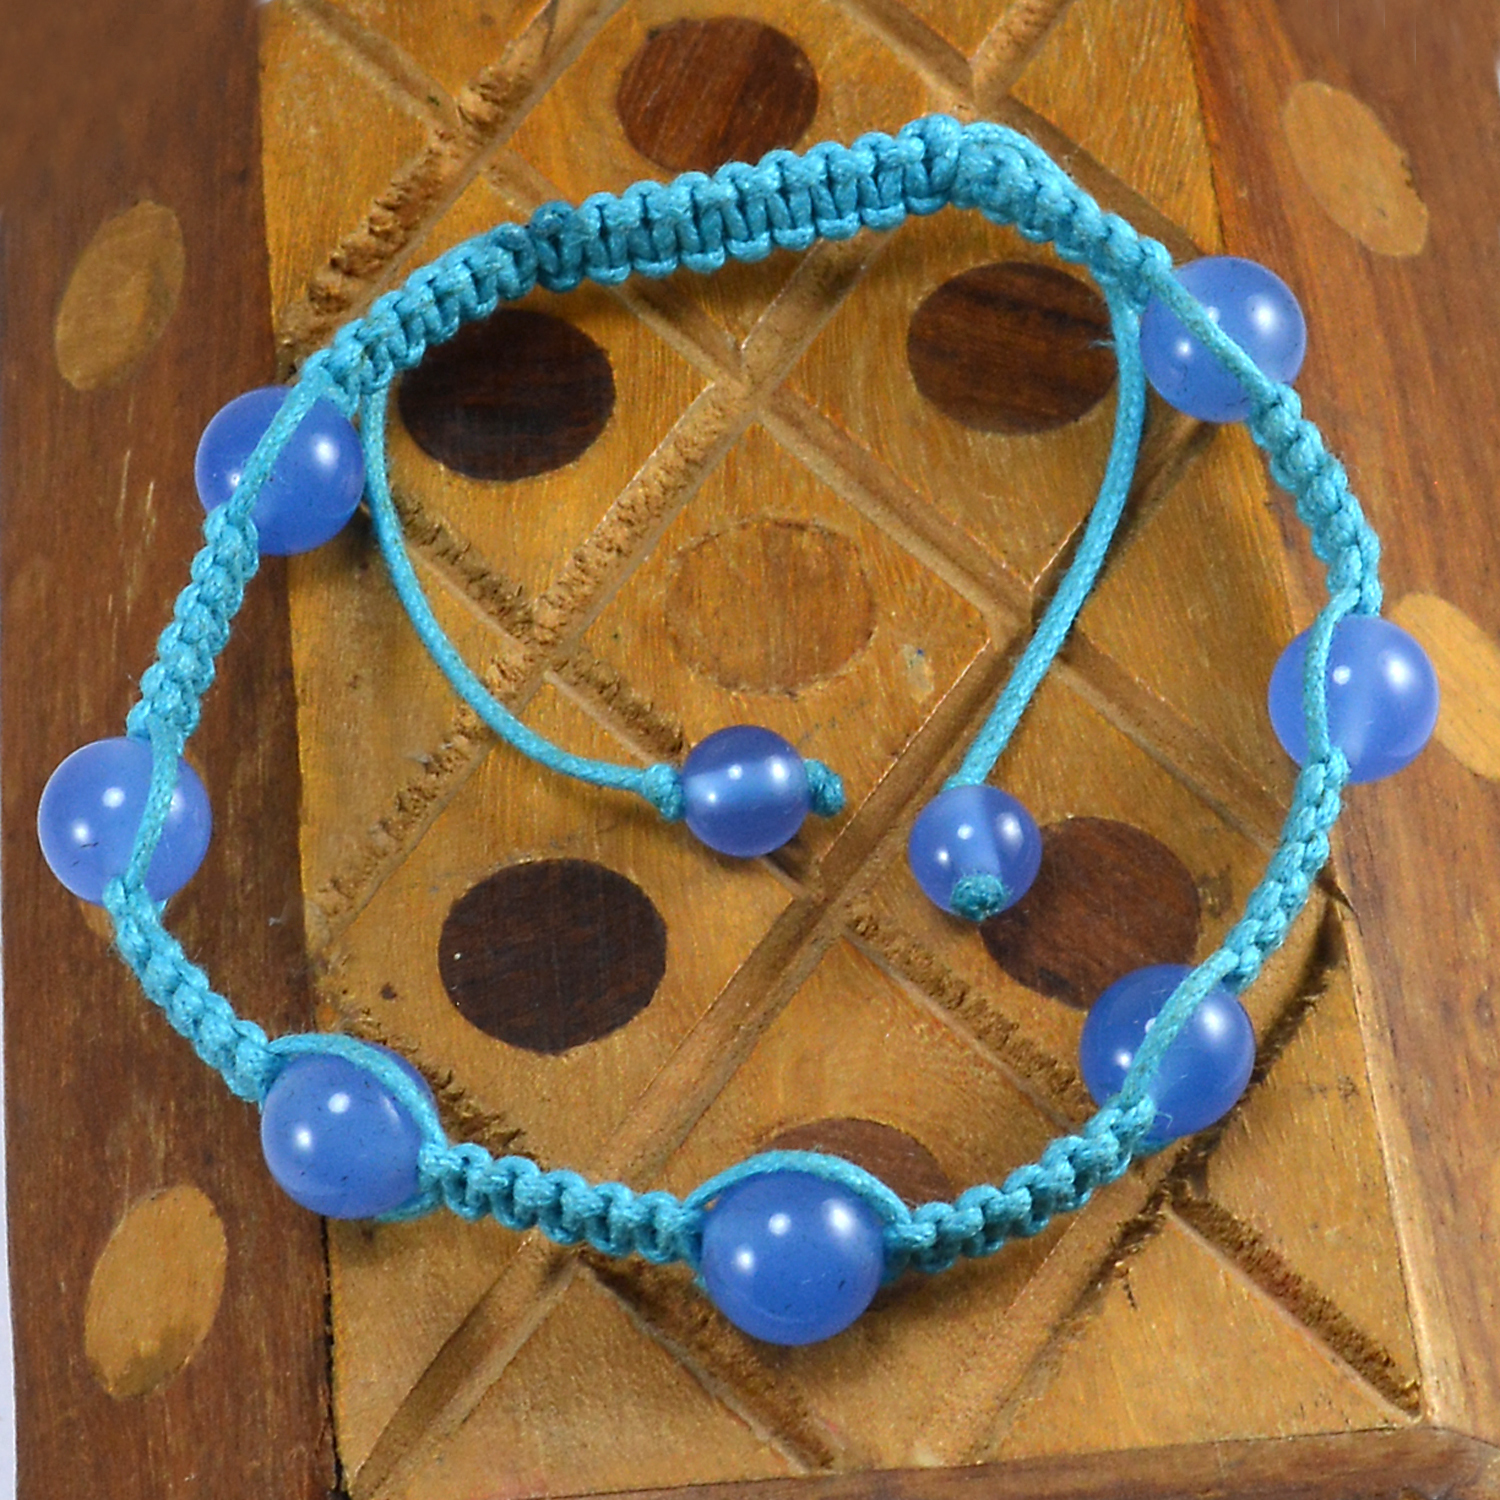 Blue Chalcedony Gemstone Adjustable Bracelet PG-155839